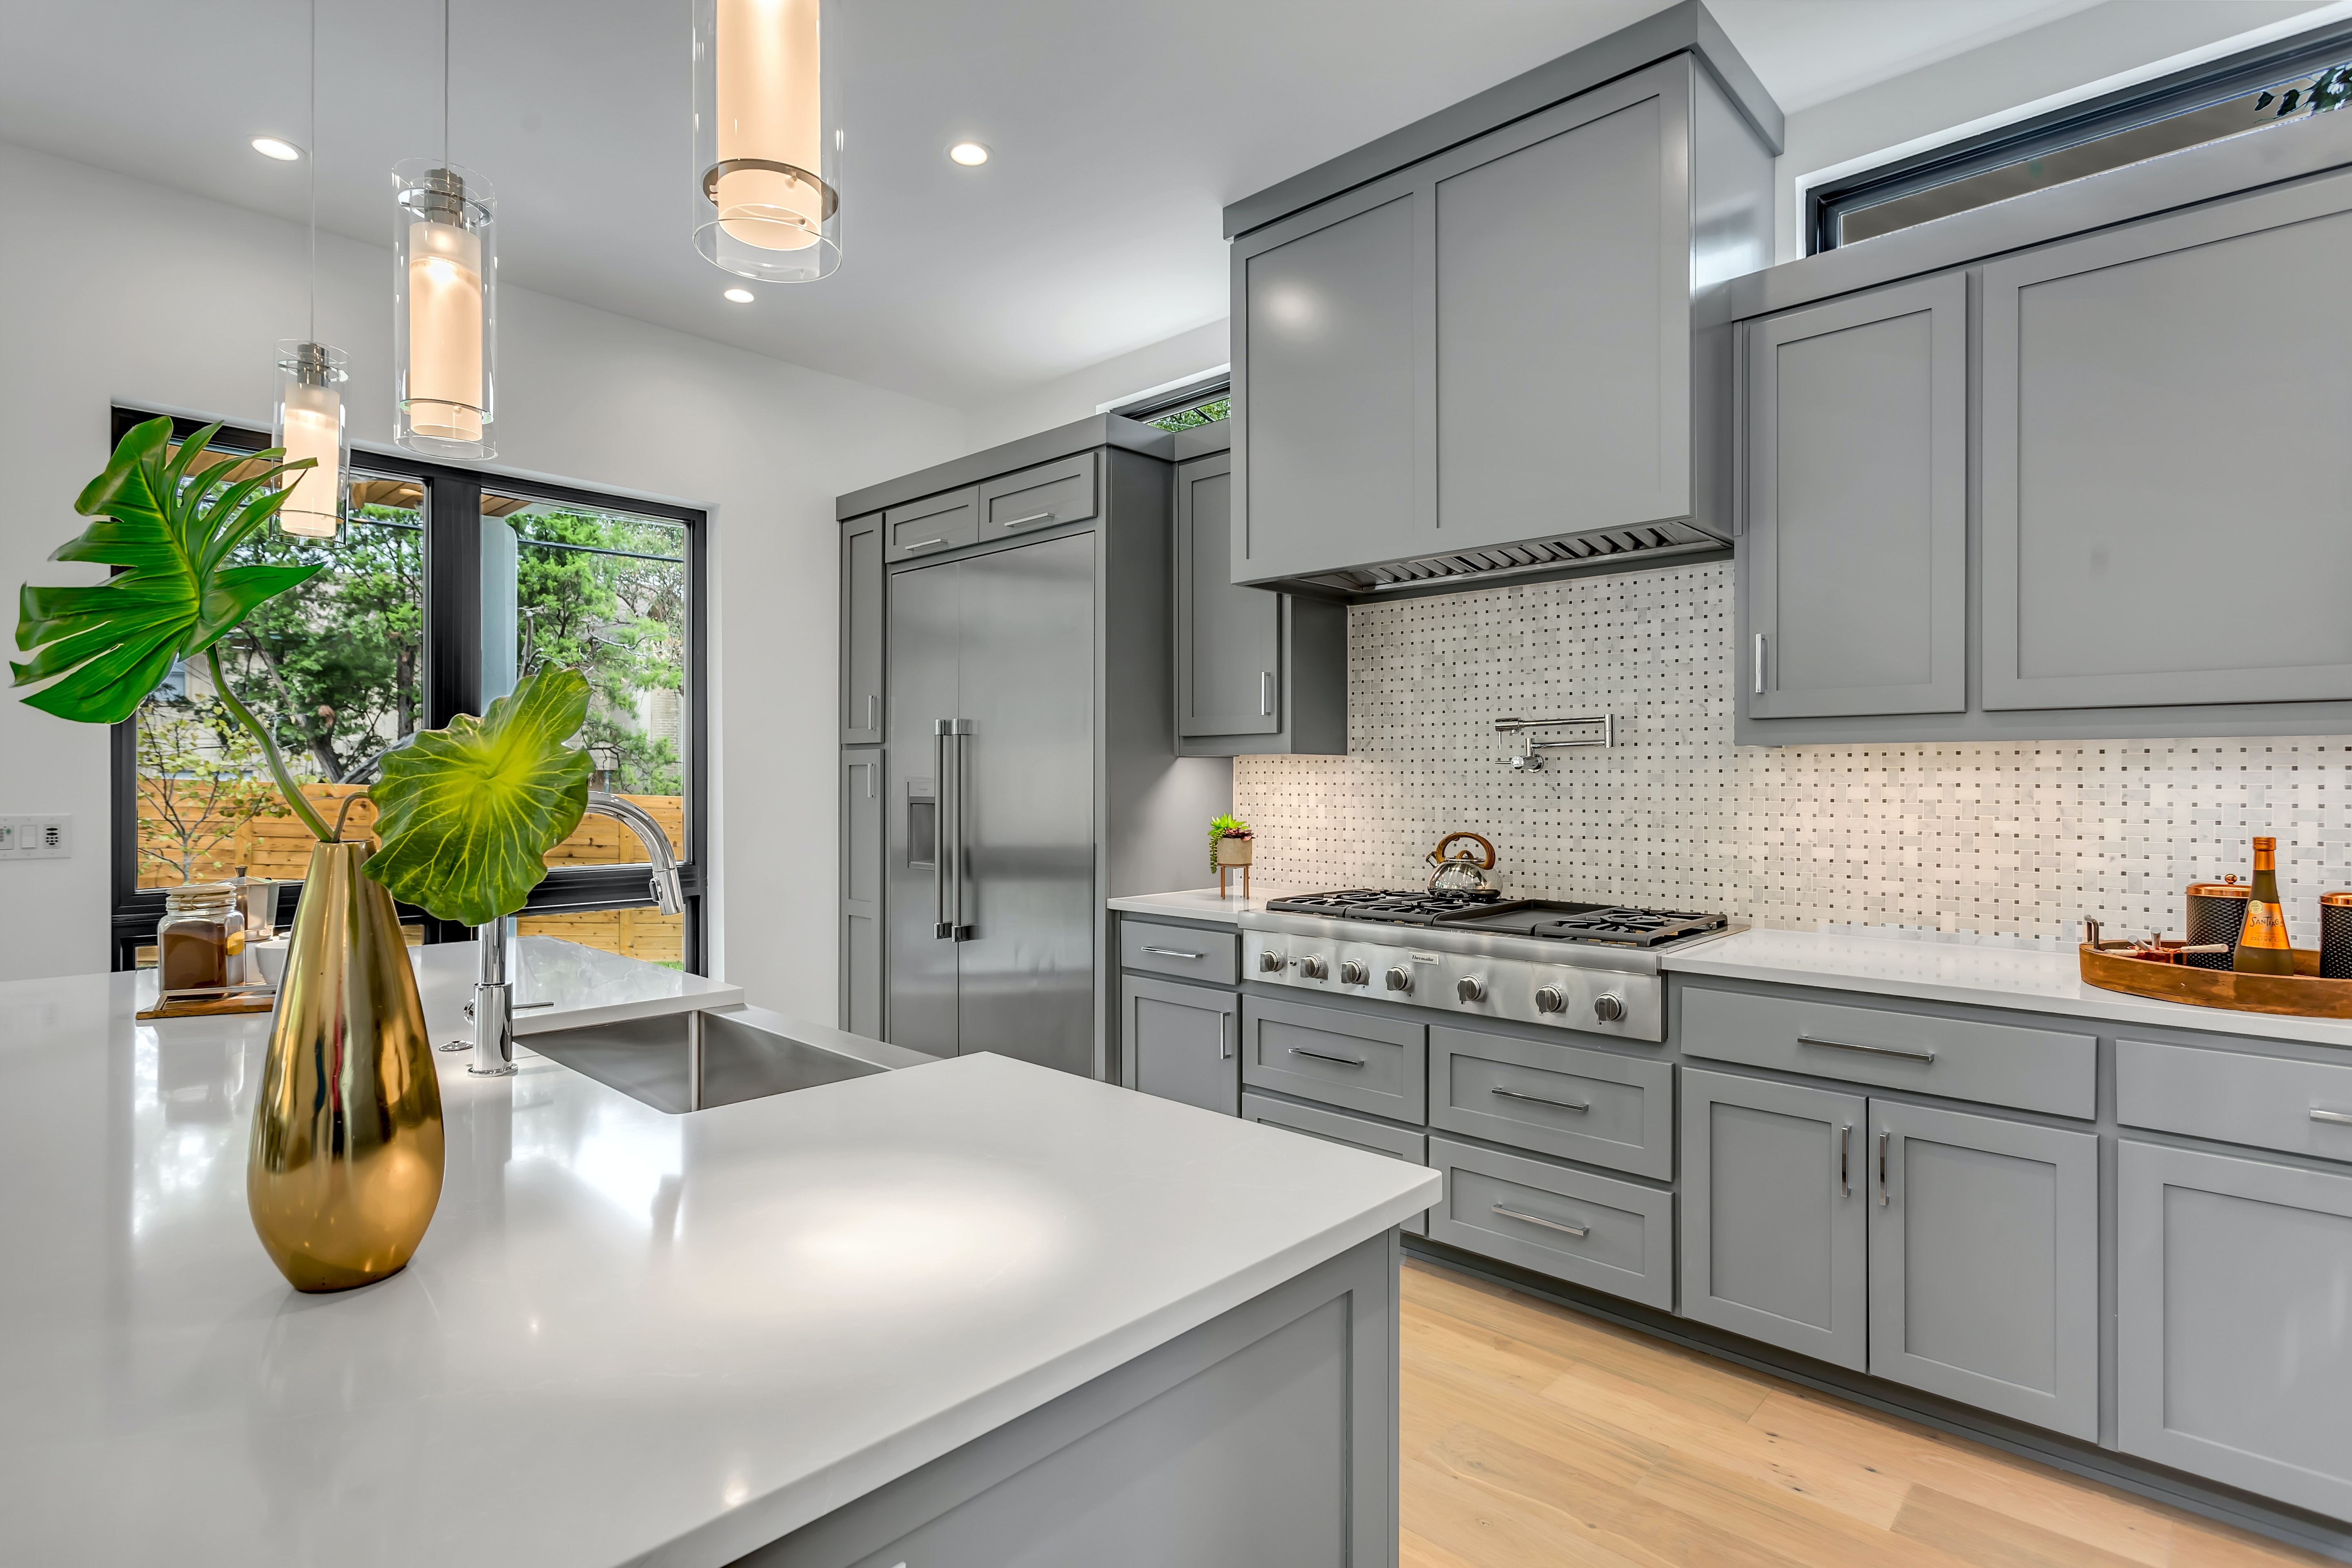 Kitchen Cabinet Materials: Pros and Cons of Popular Materials